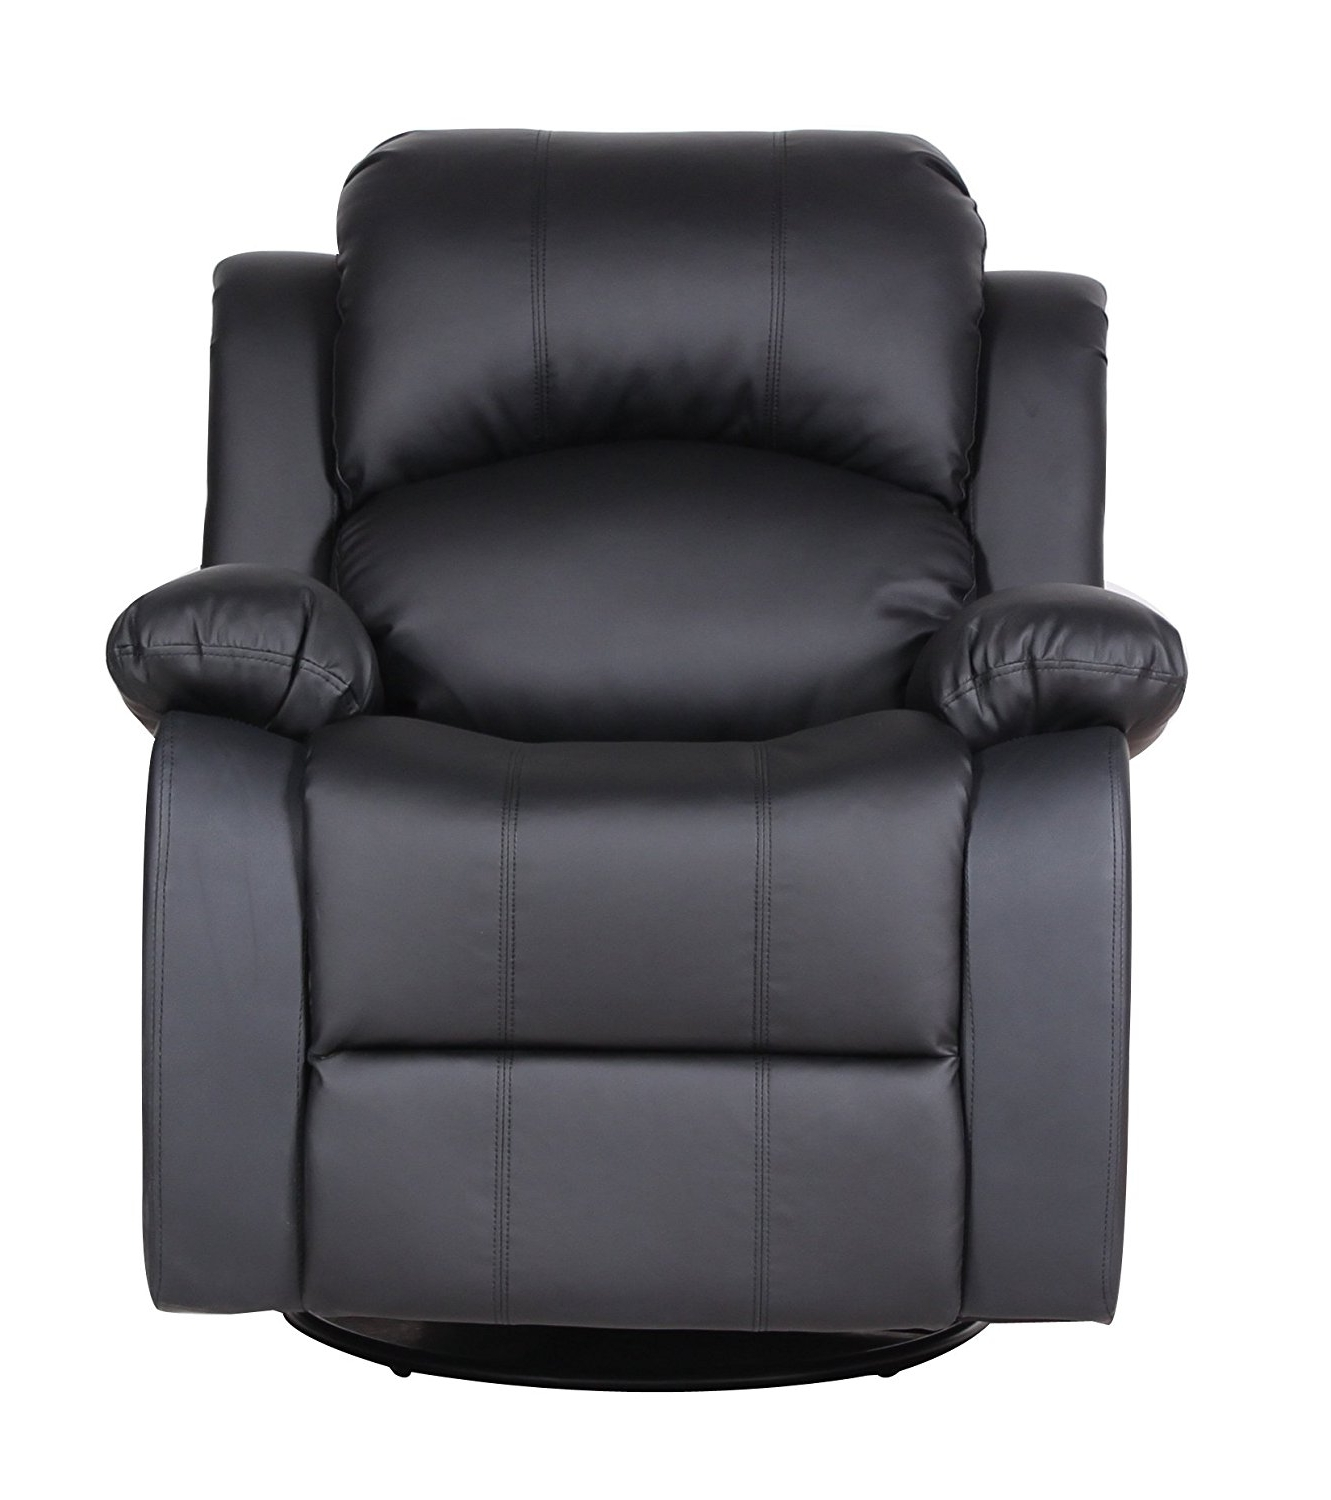 Rocking Sofa Chairs Regarding Most Recently Released Amazon: Bonded Leather Rocker And Swivel Recliner Living Room (View 13 of 15)